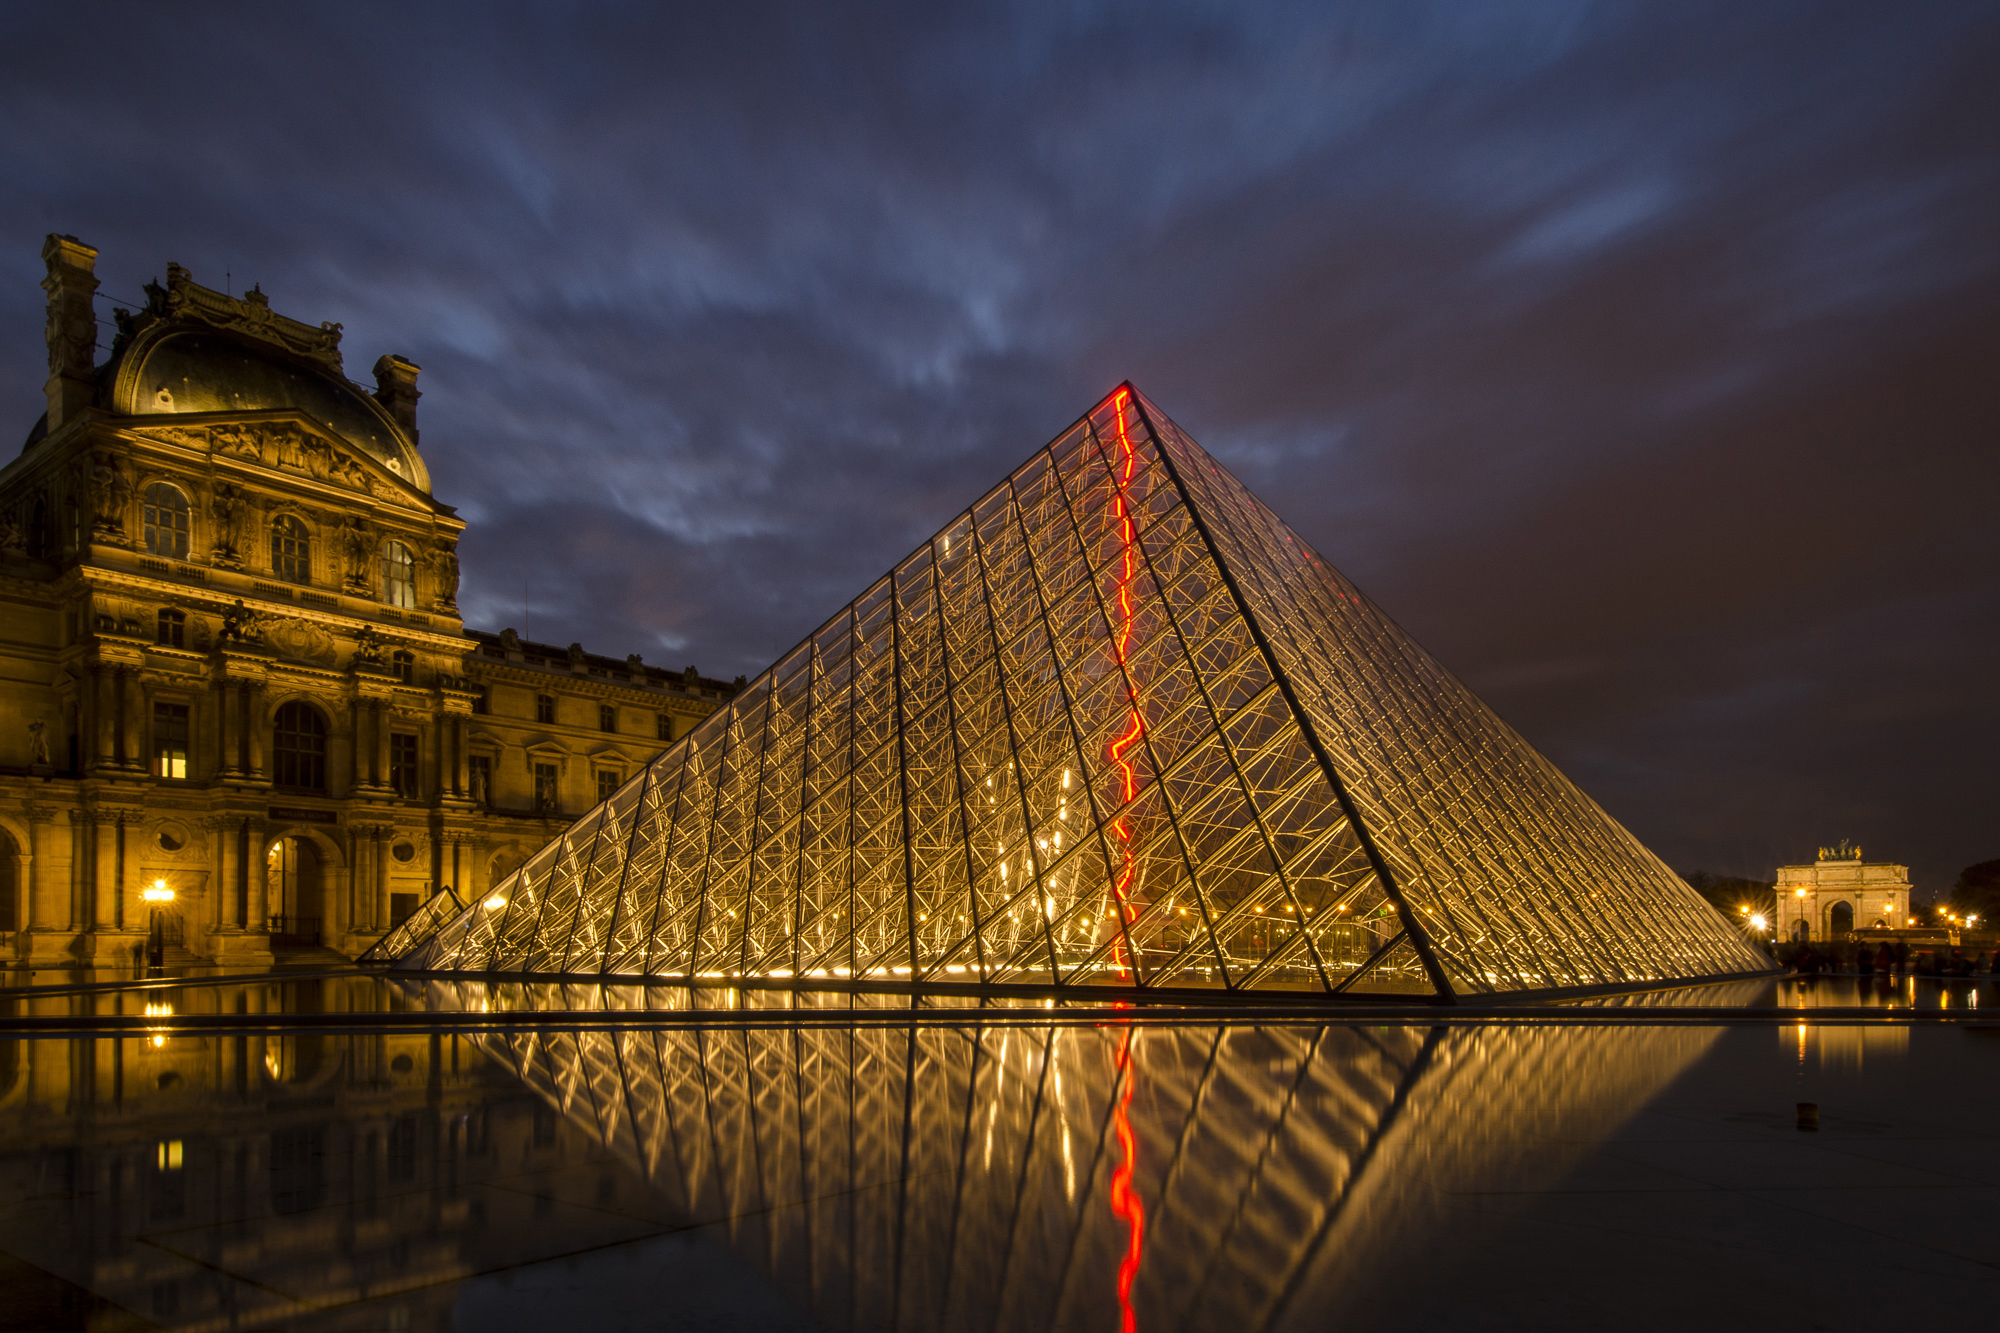 paris-night-photo-tour-010.jpg